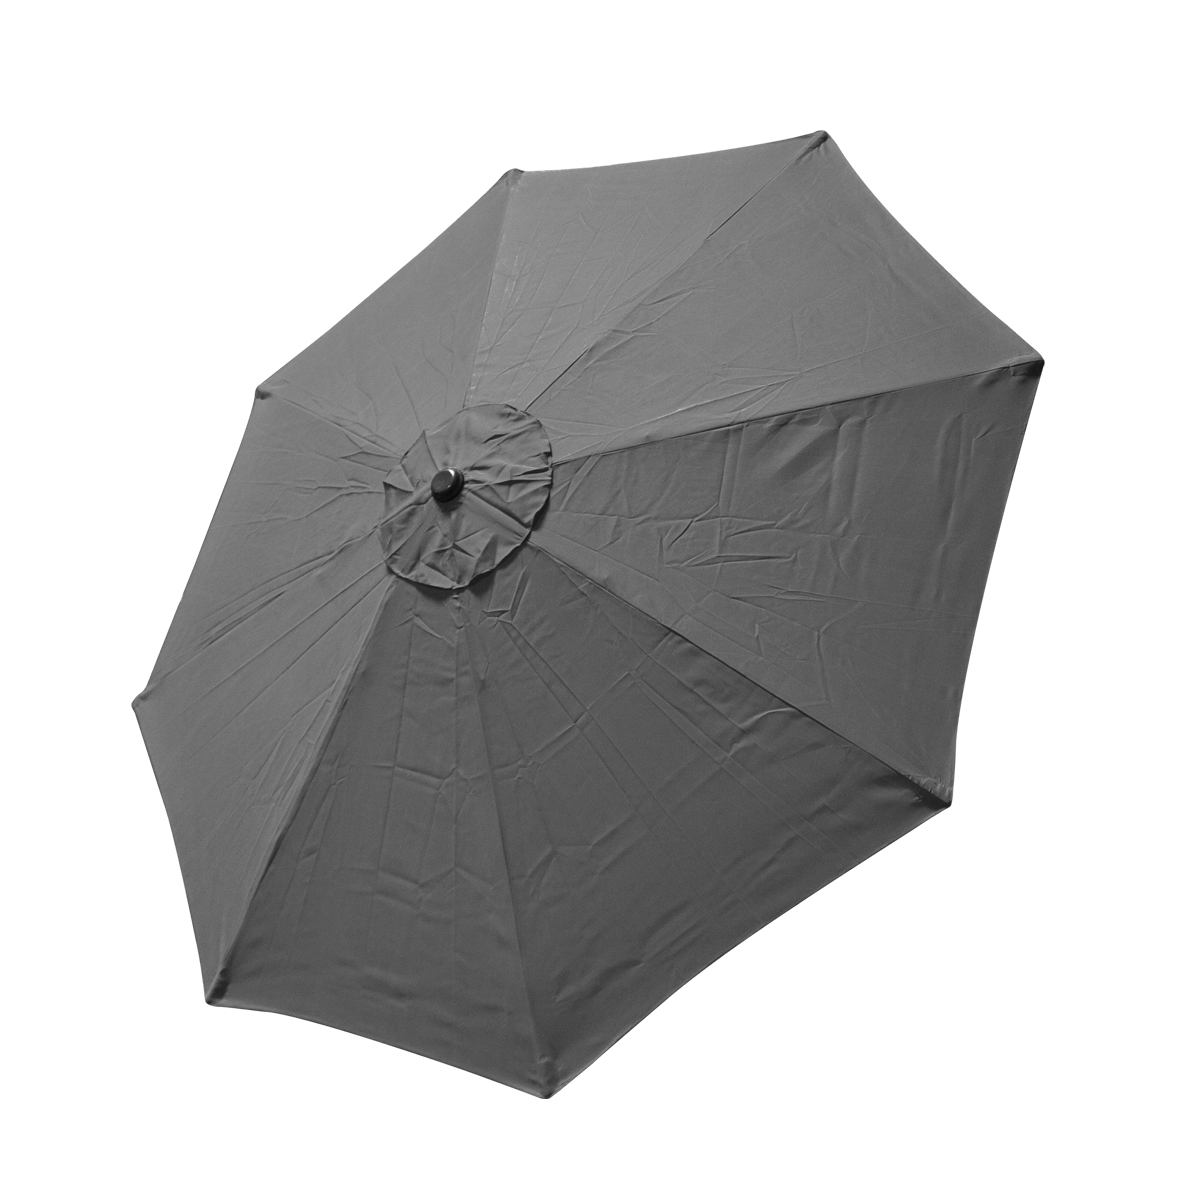 Patio Umbrella Material Replacement: Replacement Cover Canopy 9 FT 8 Ribs Umbrella Grey Top